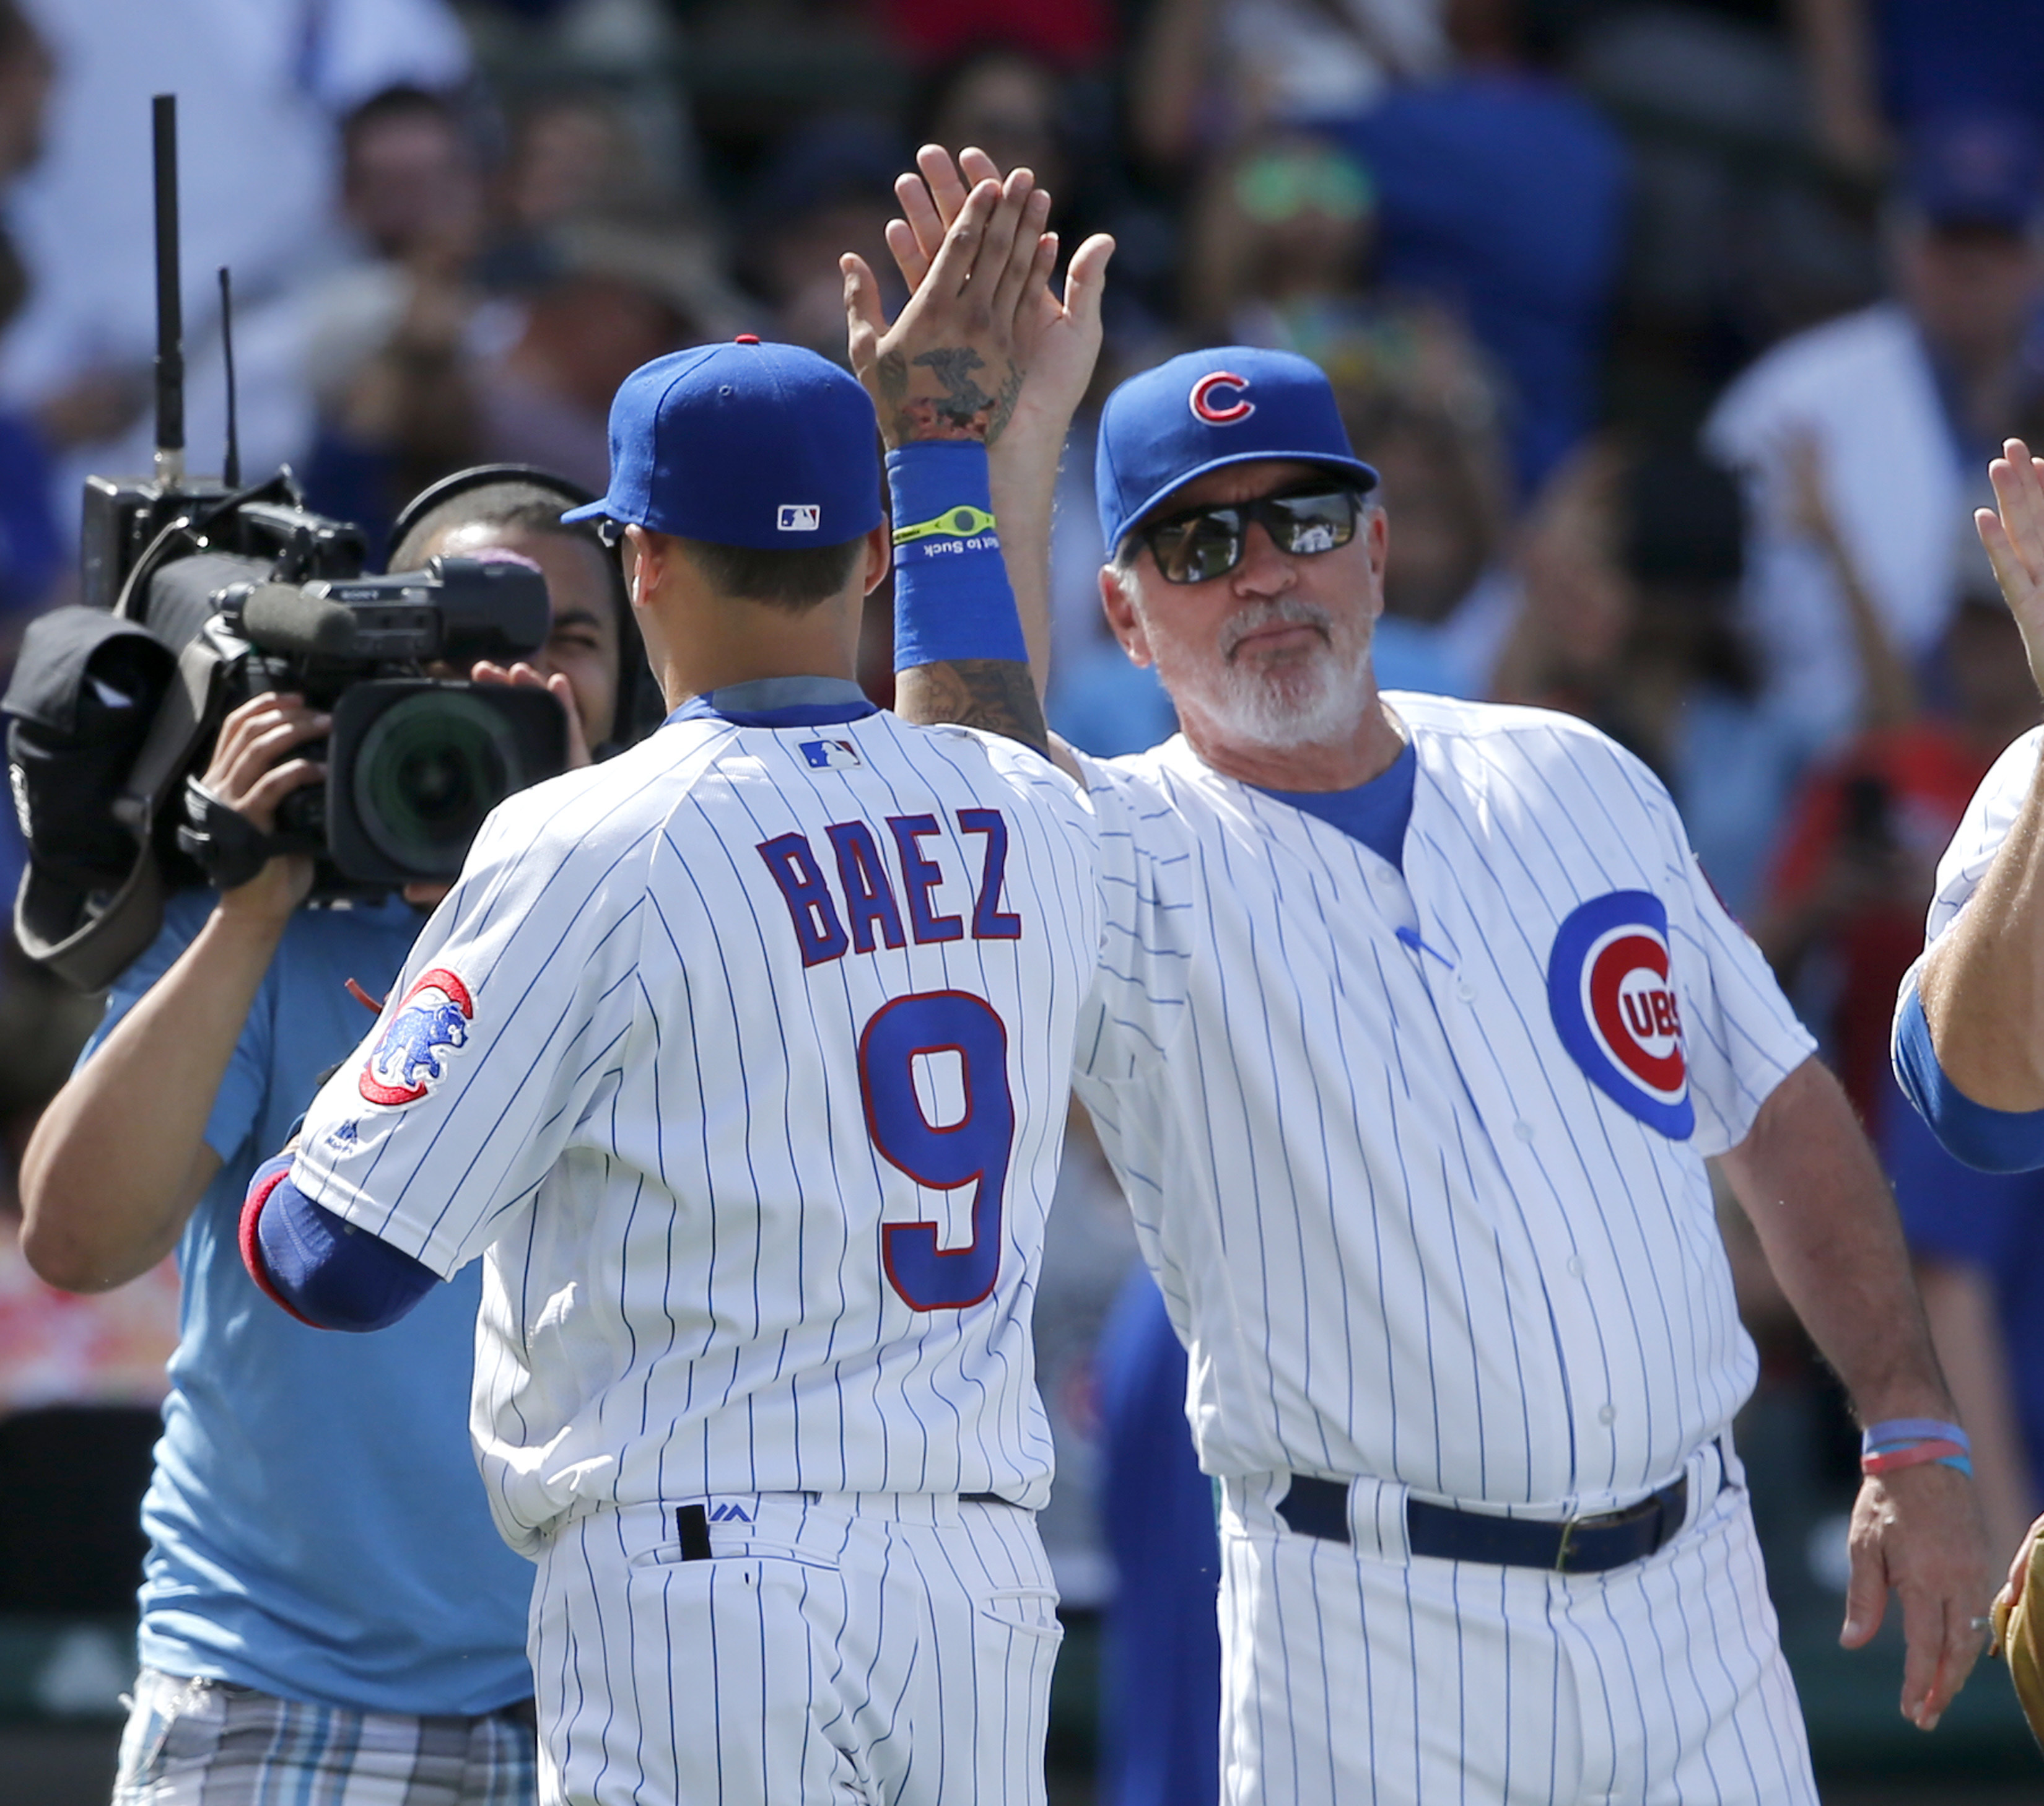 Chicago Cubs manager Joe Maddon, right, and Javier Baez celebrate the Cubs' 7-2 win over the Los Angeles Dodgers after a baseball game Thursday, June 2, 2016, in Chicago. (AP Photo/Charles Rex Arbogast)